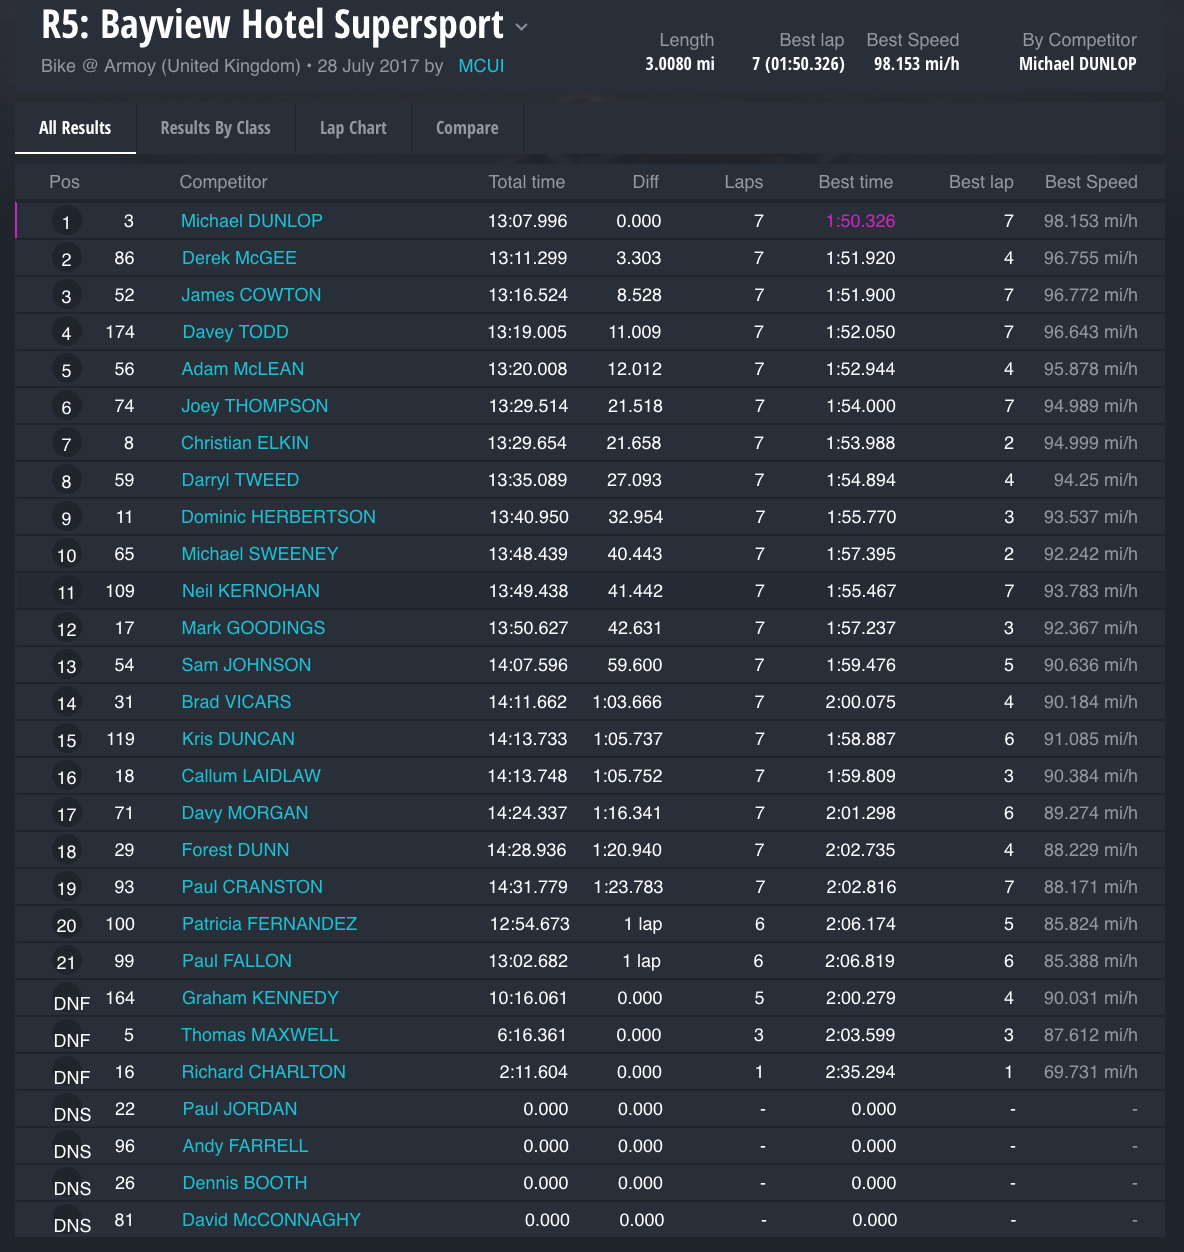 Race 5 : Bayview Hotel Supersport